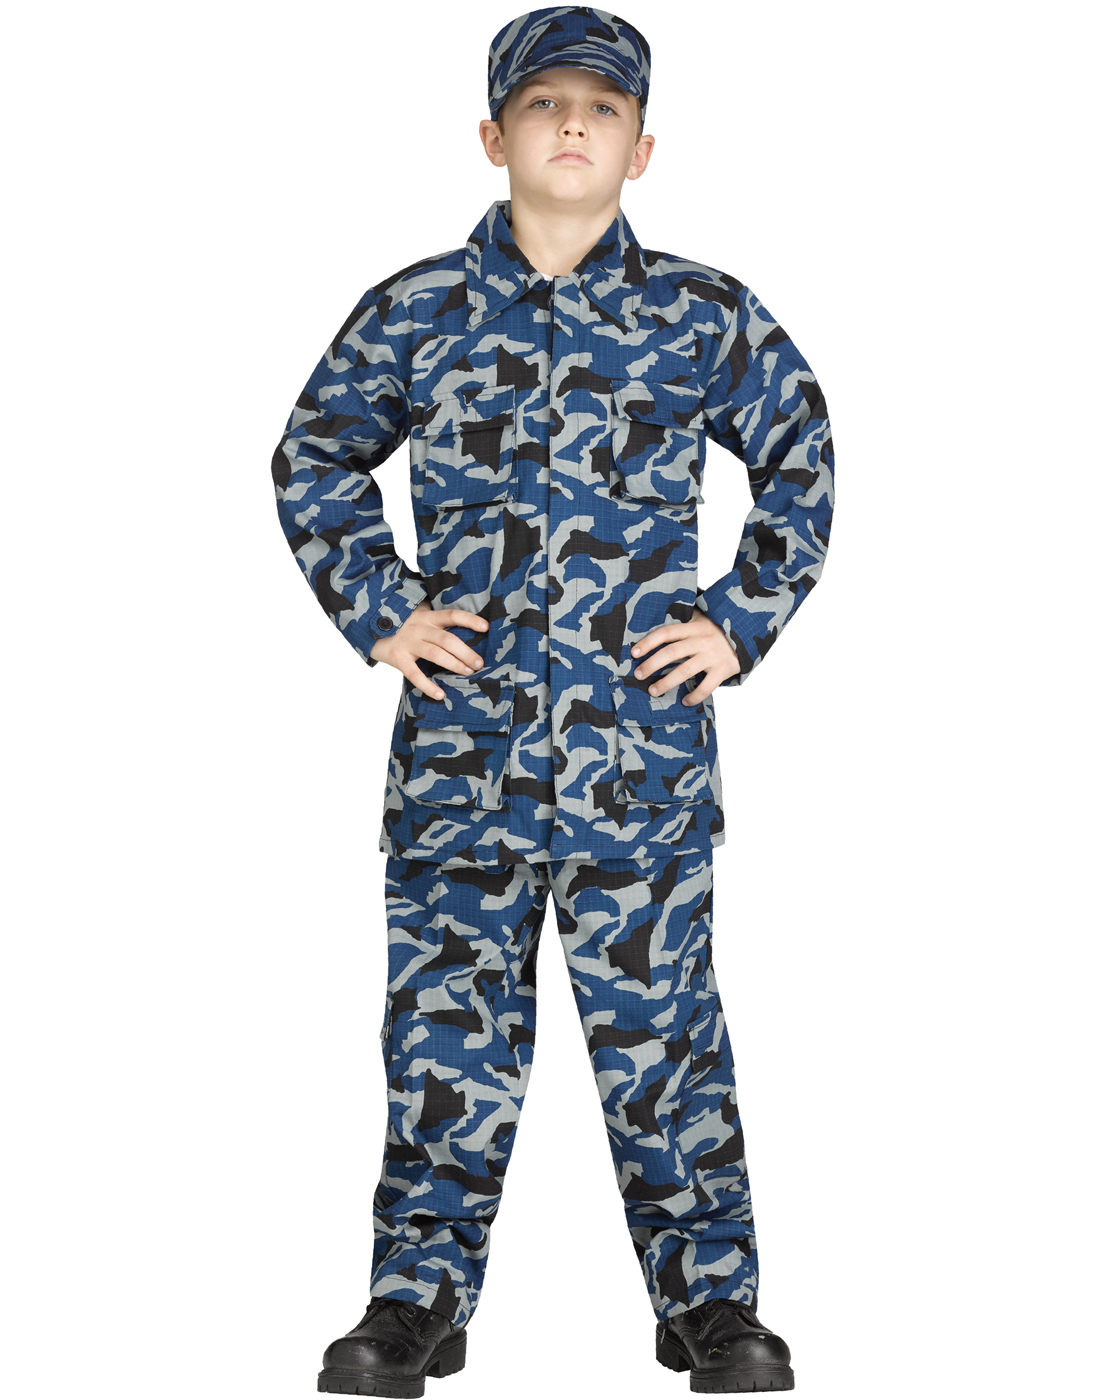 Navy Blue Camoflauge Uniform Boys Halloween Costume-L  sc 1 st  eBay & Blue Camouflage Uniform Boys Navy Soldier Cammies Halloween Costume ...